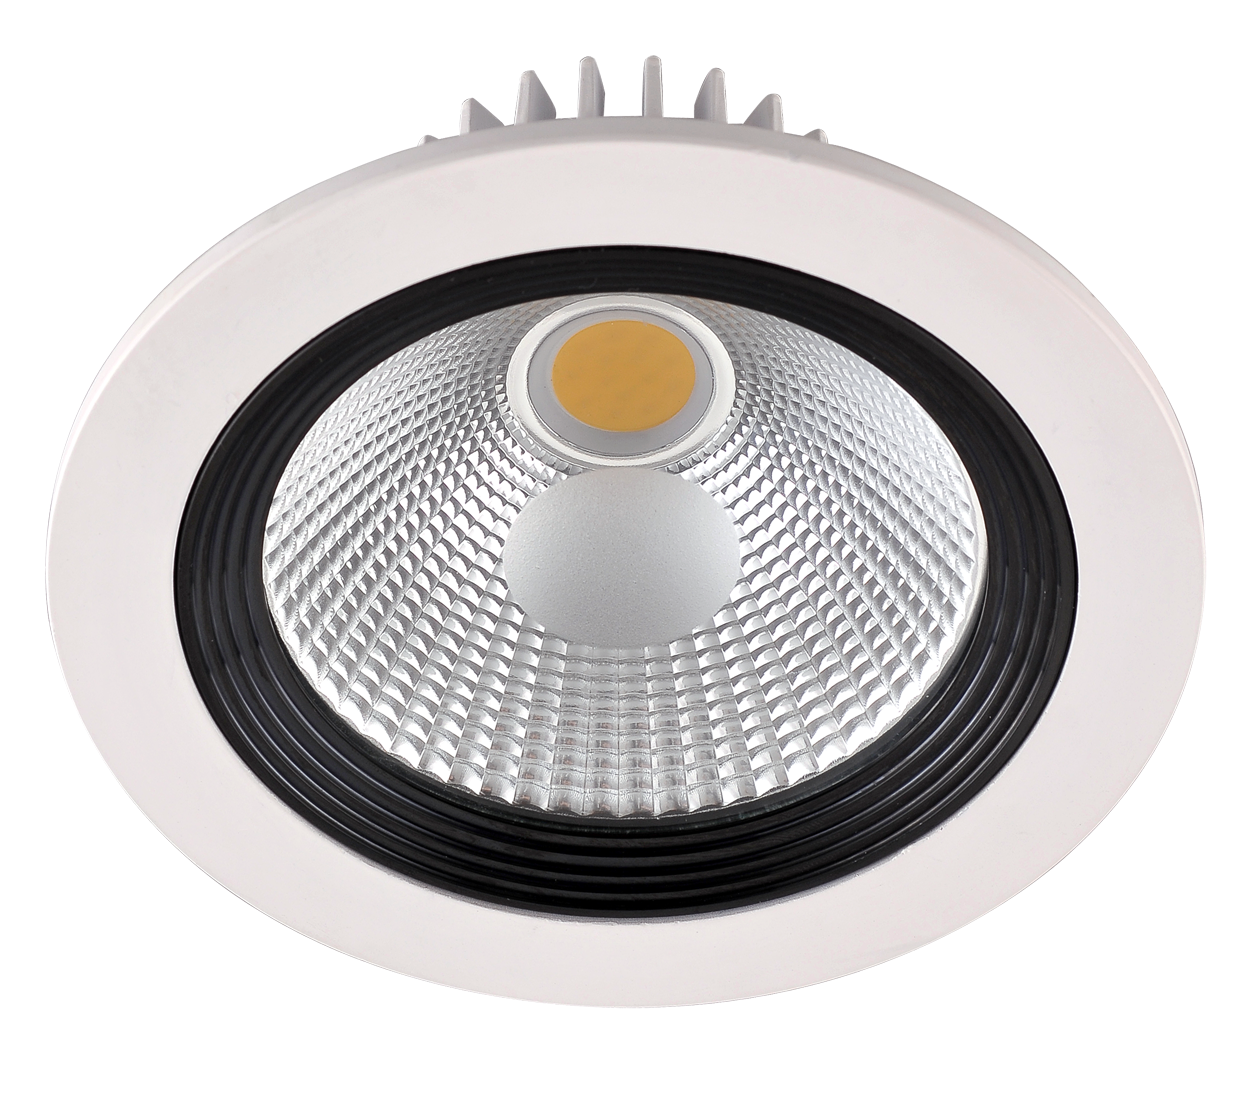 LED-Downlight 1 x 20 W